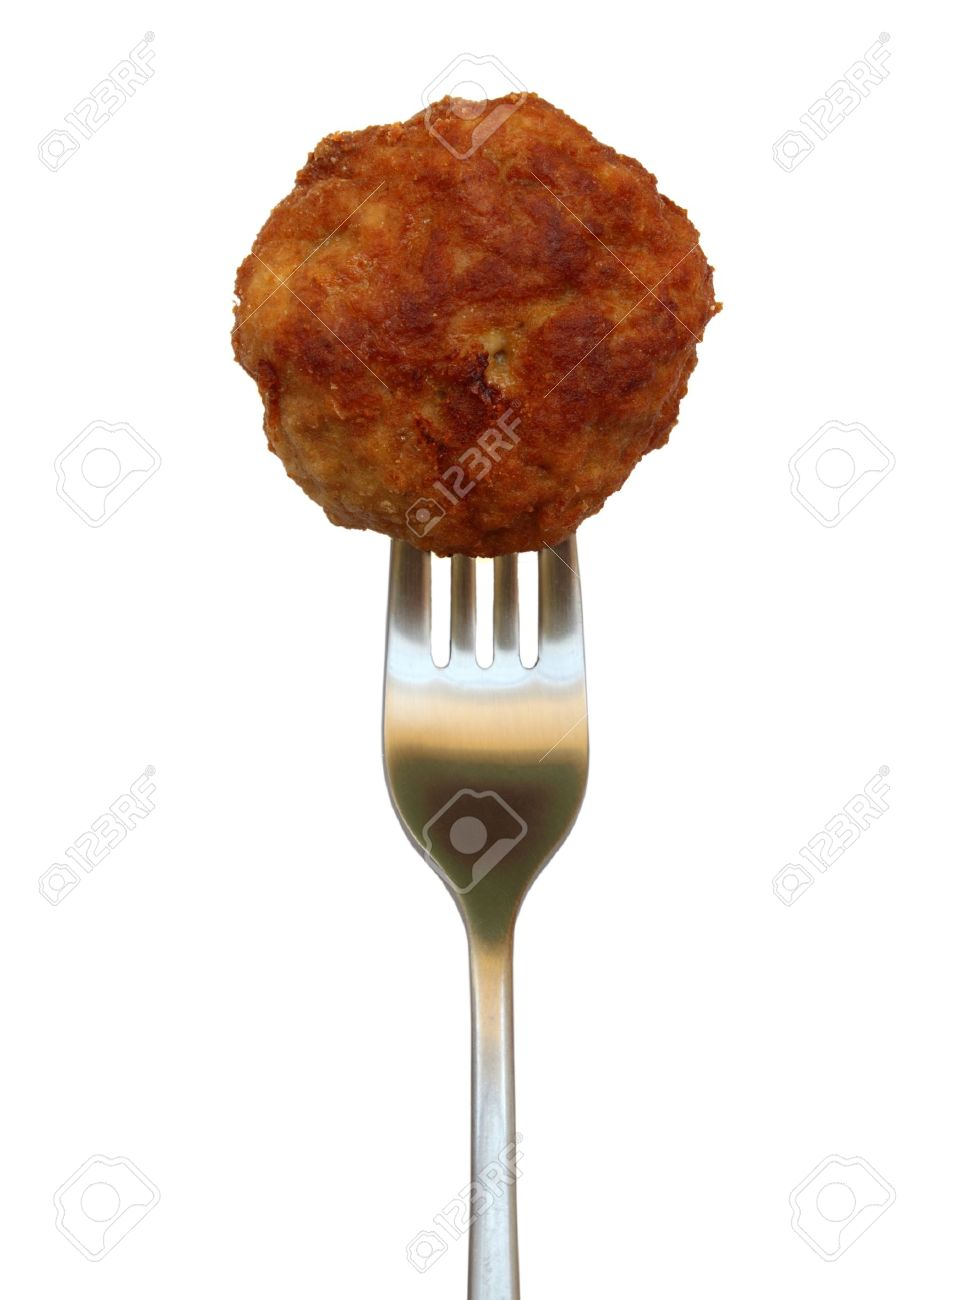 isolated fried meatball on white - 10030298